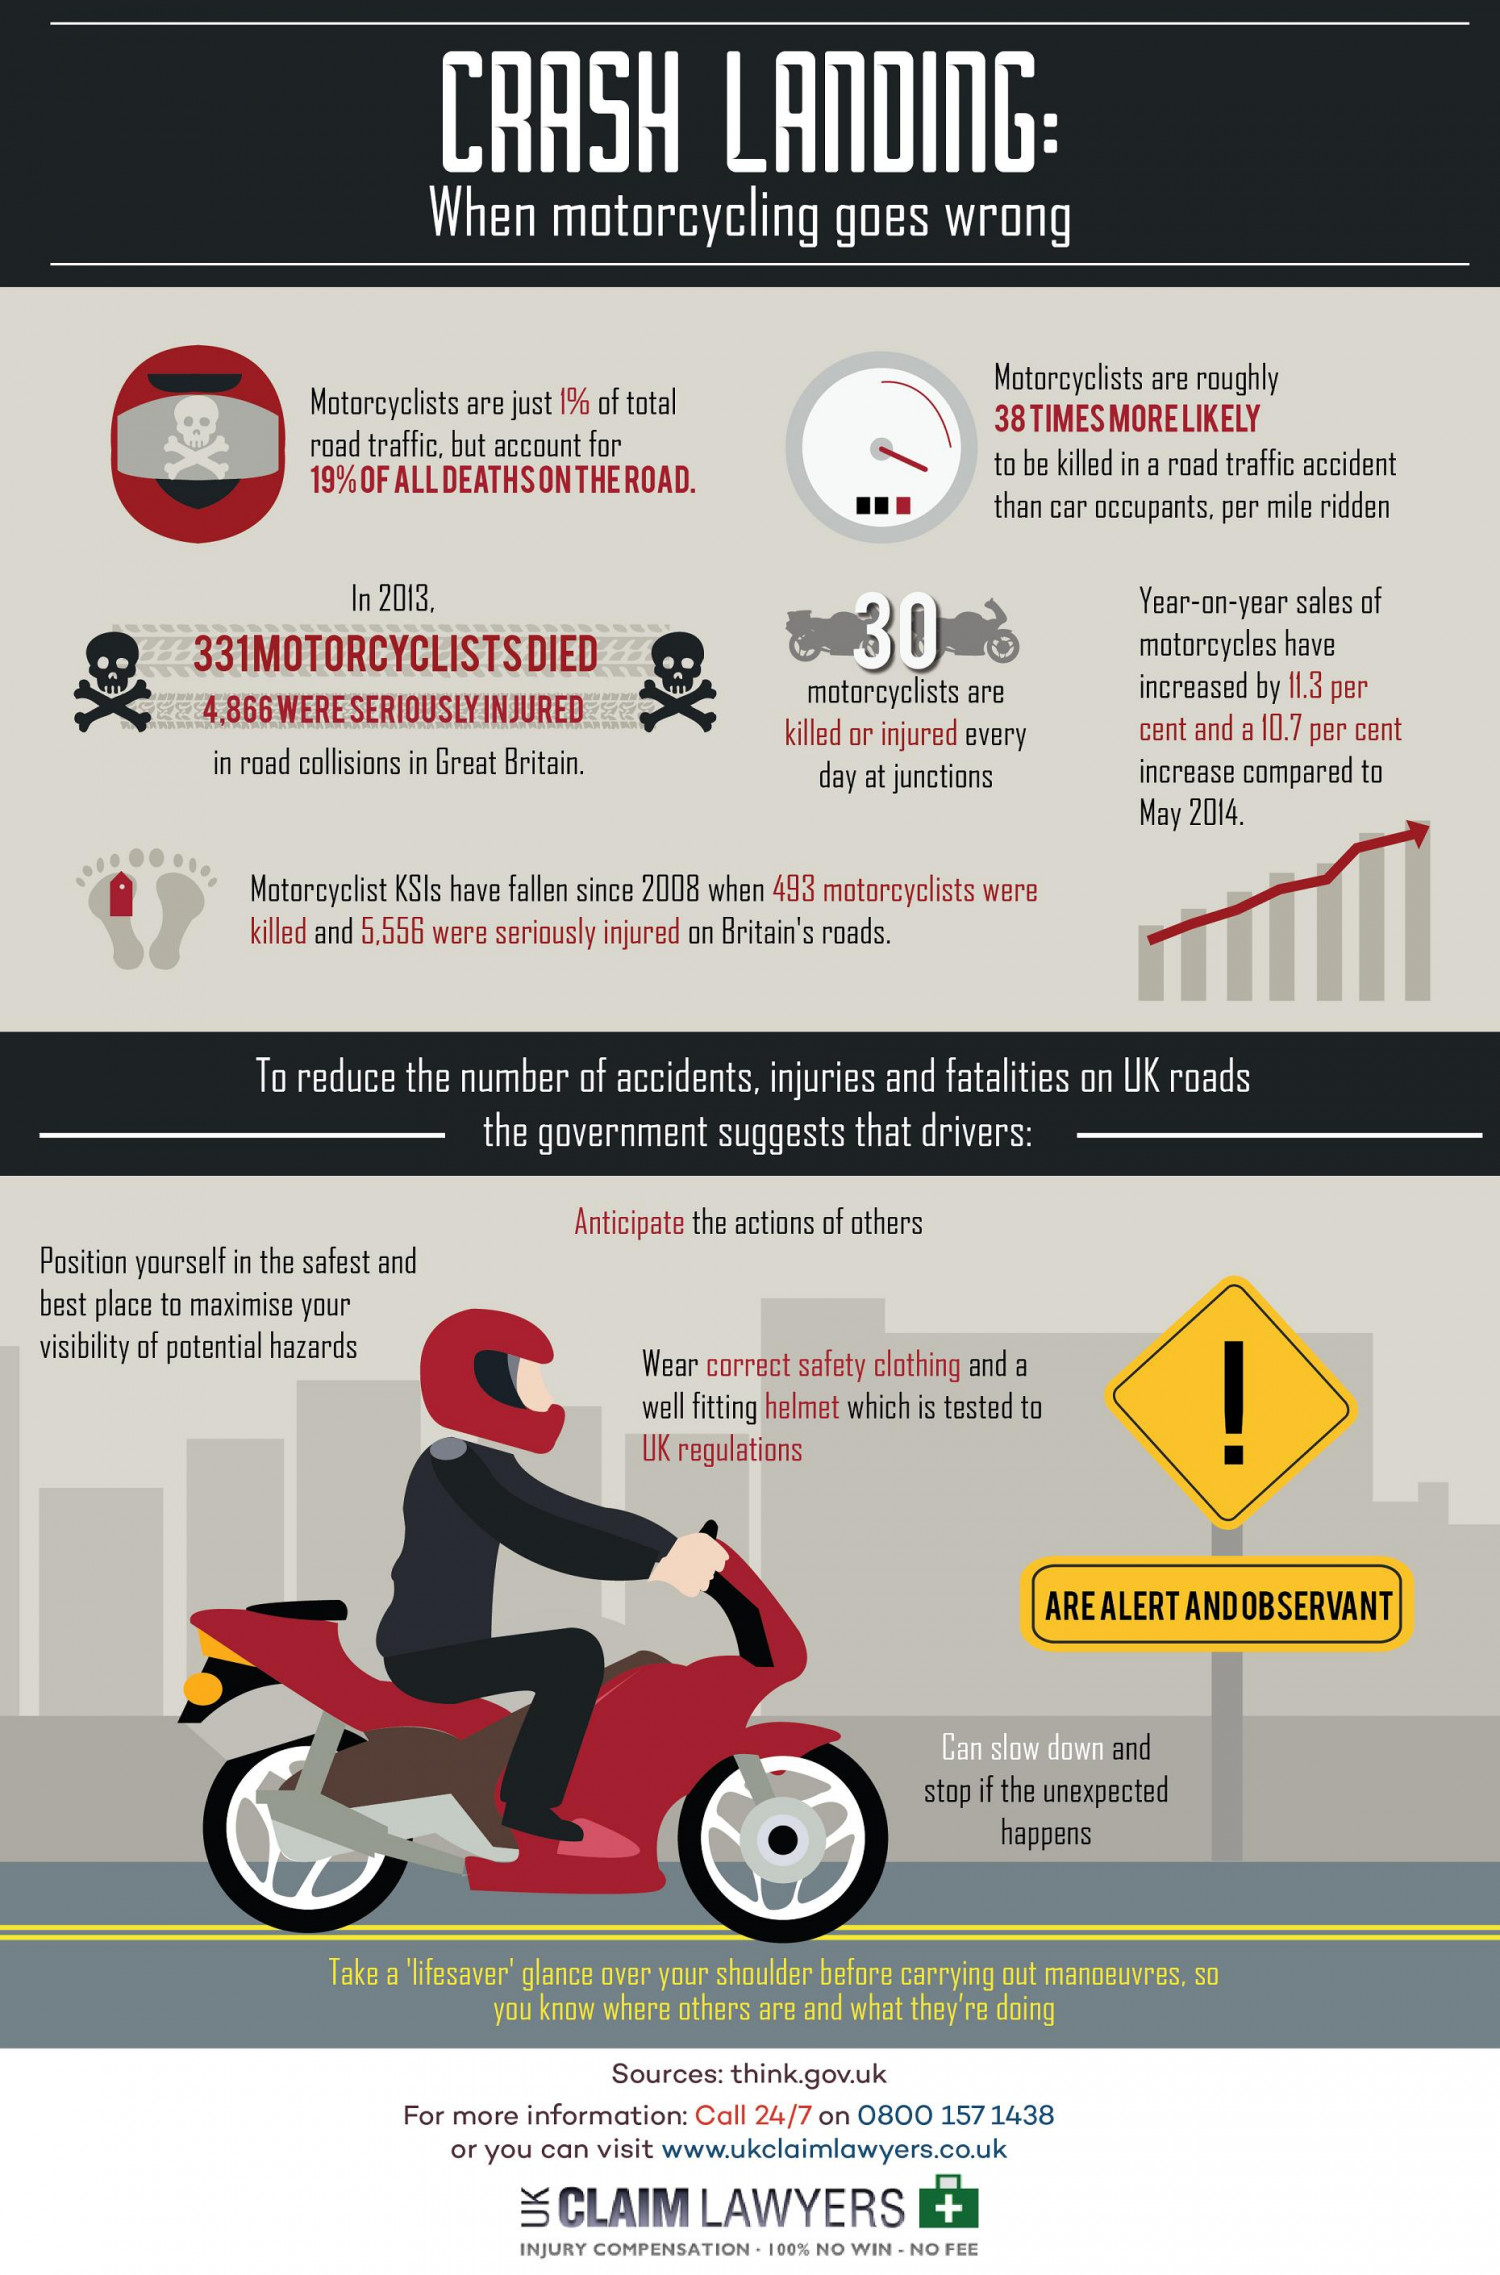 Crash Landing: When motorcycling goes wrong Infographic